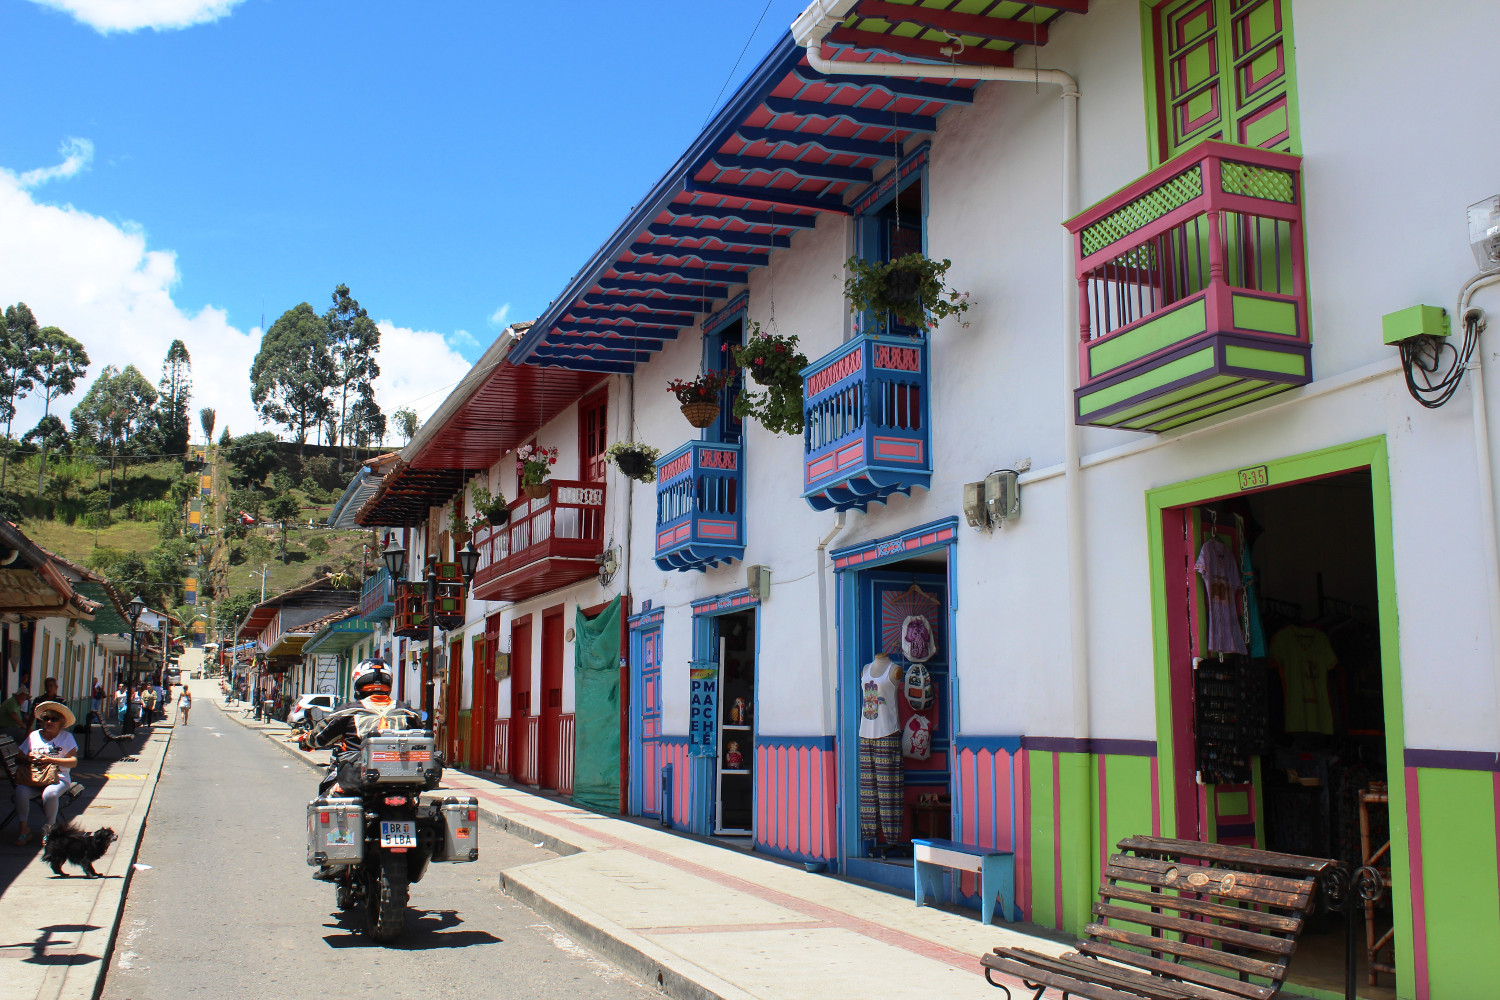 Bunte Häuserzeile in Salento, im Kaffeedreieck von Kolumbien | Row of colorful houses in Salento in Colombia's coffee triangle